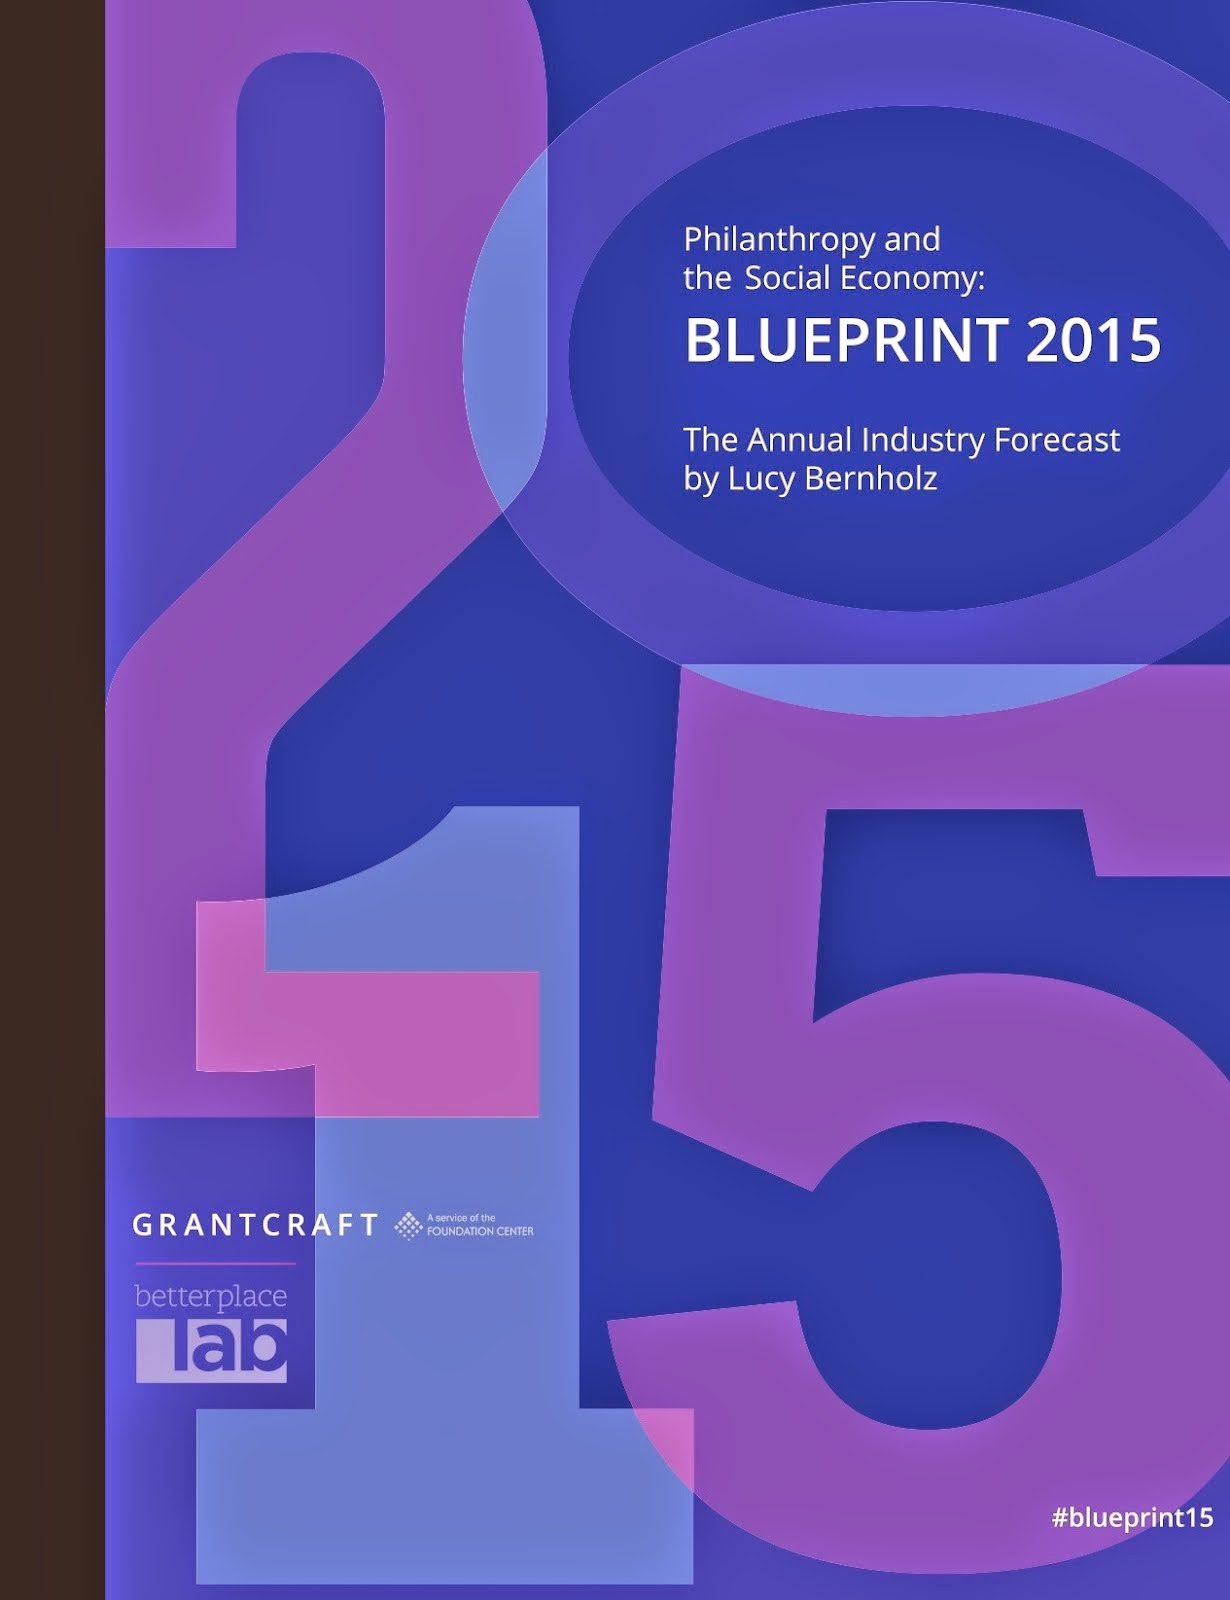 Philanthropy and the Social Economy: Blueprint 2015